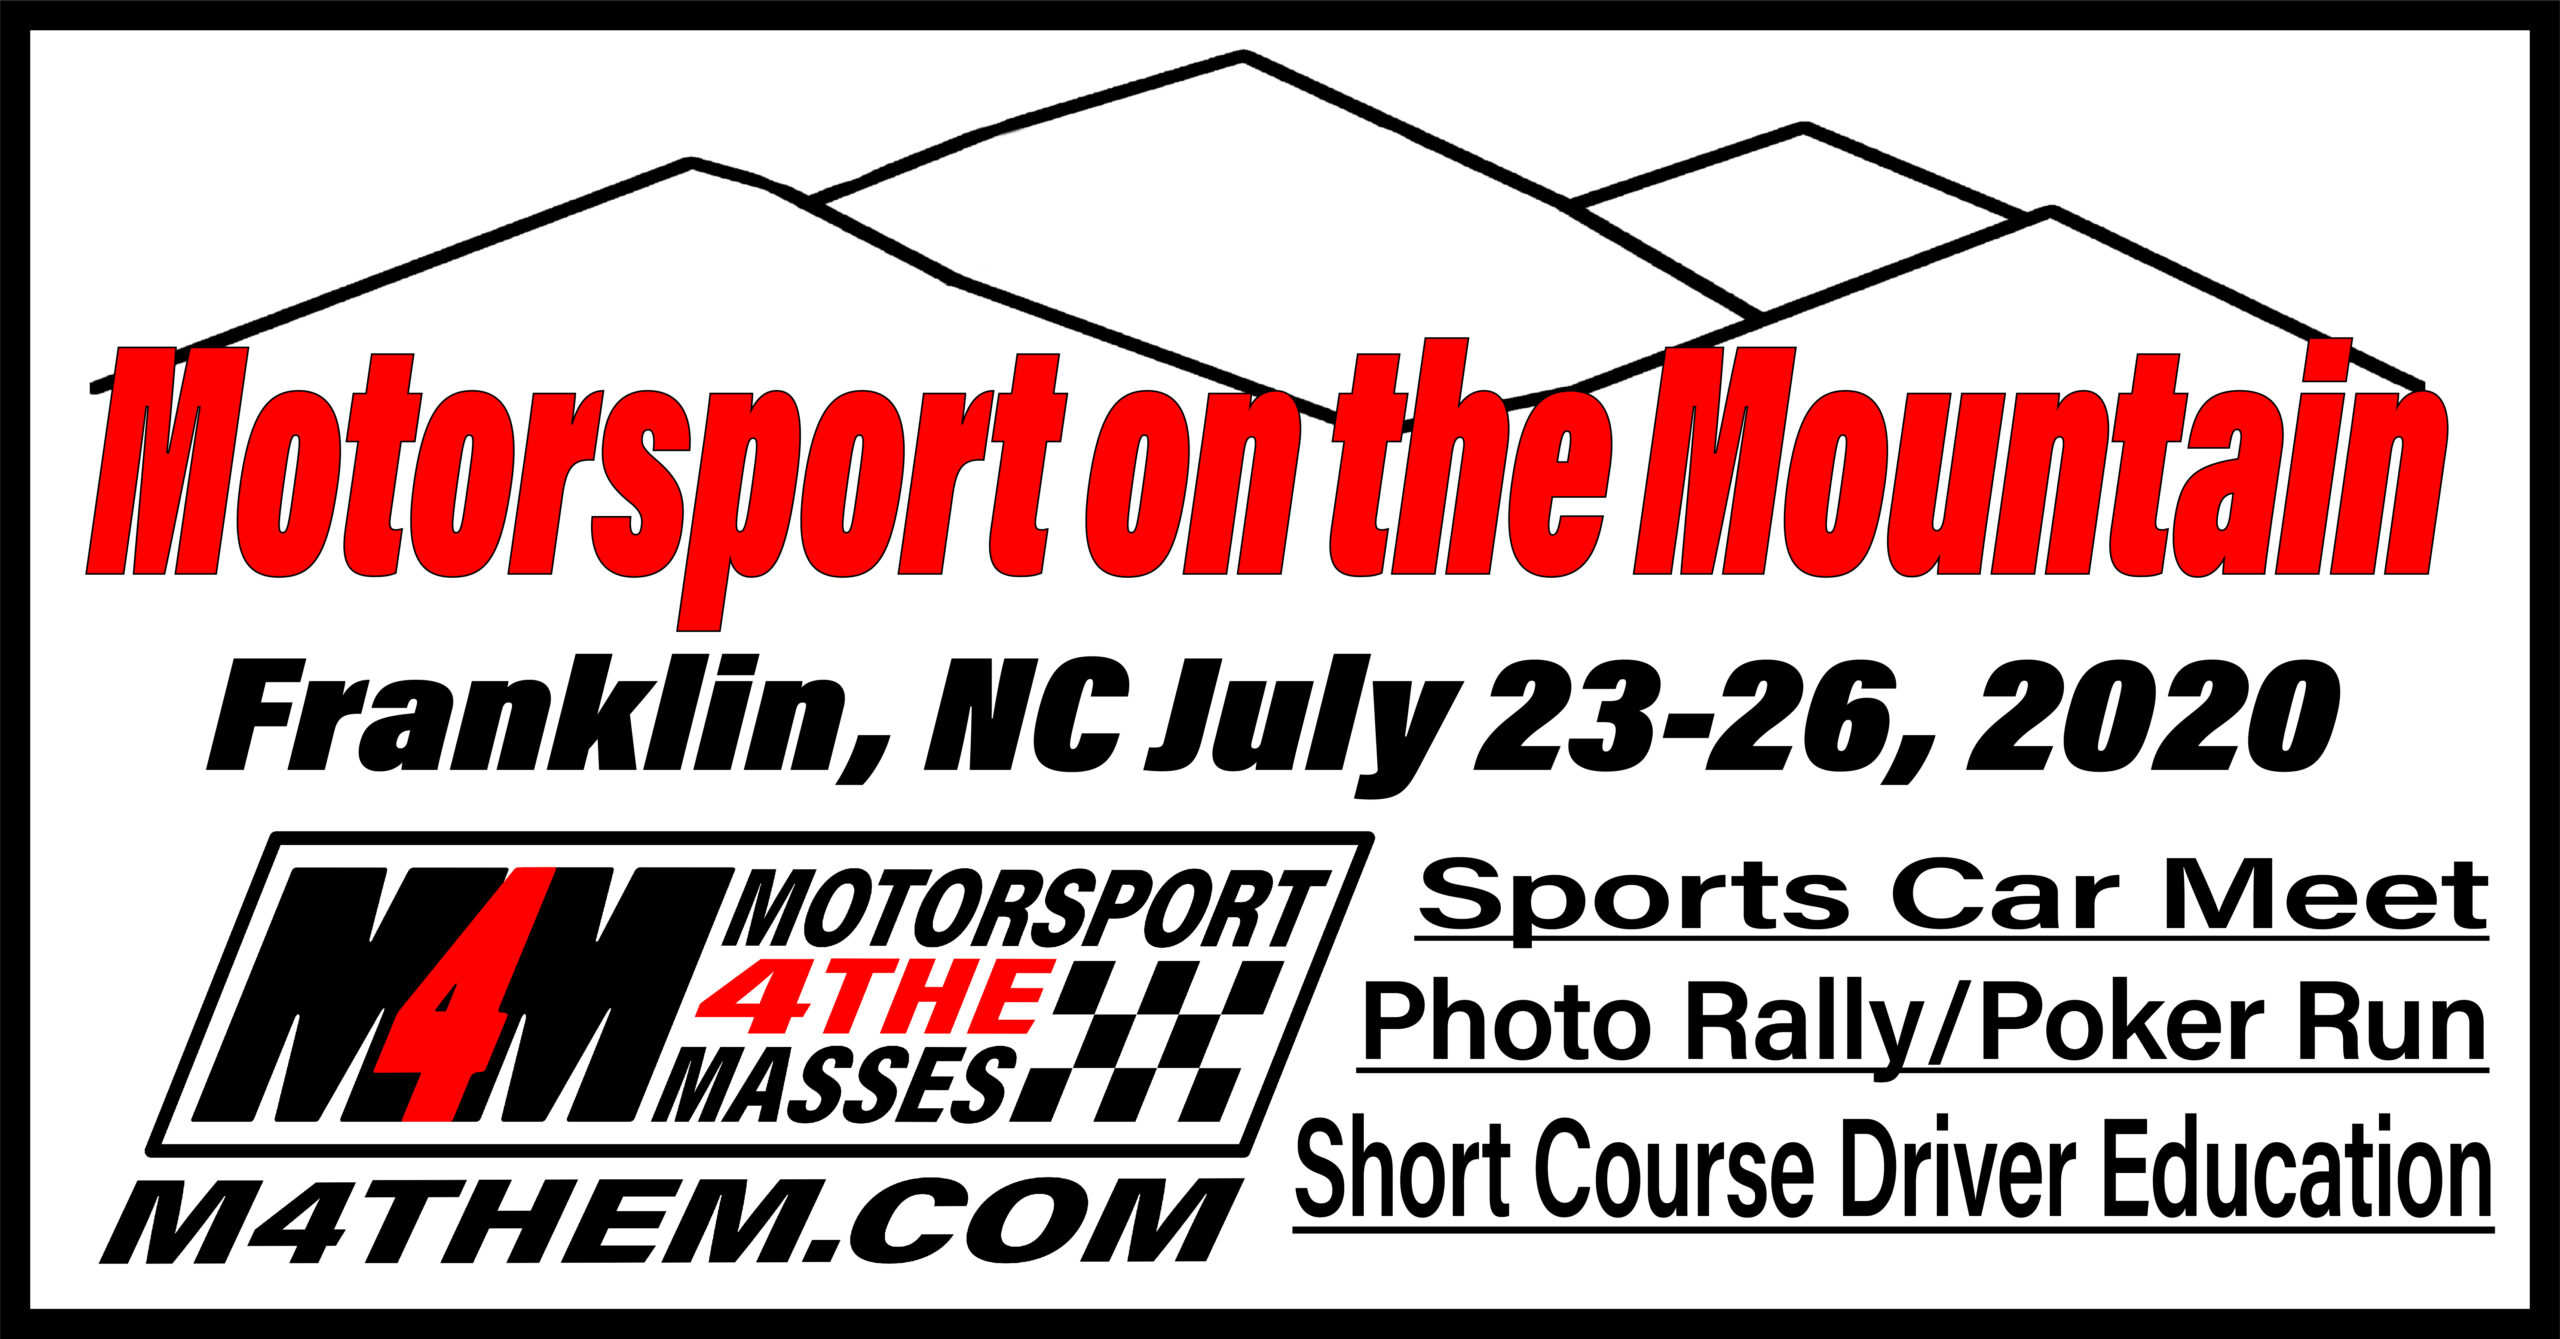 Motorsport on the Mountain is on and Kicking!